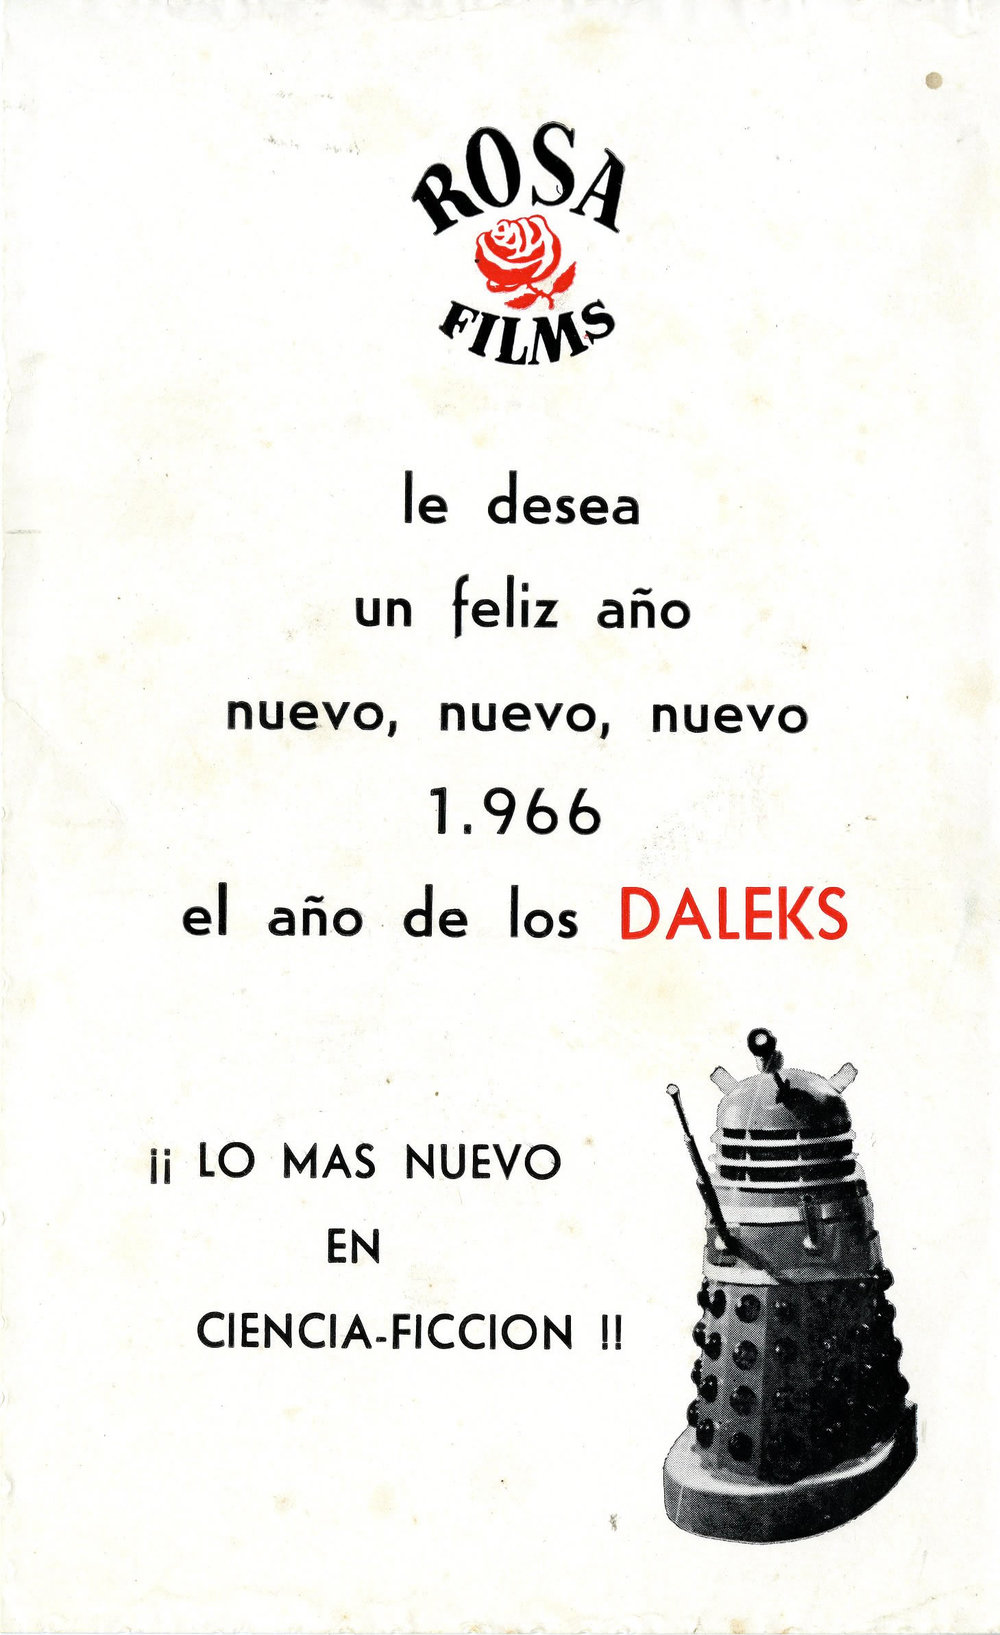 Spanish promotional flier